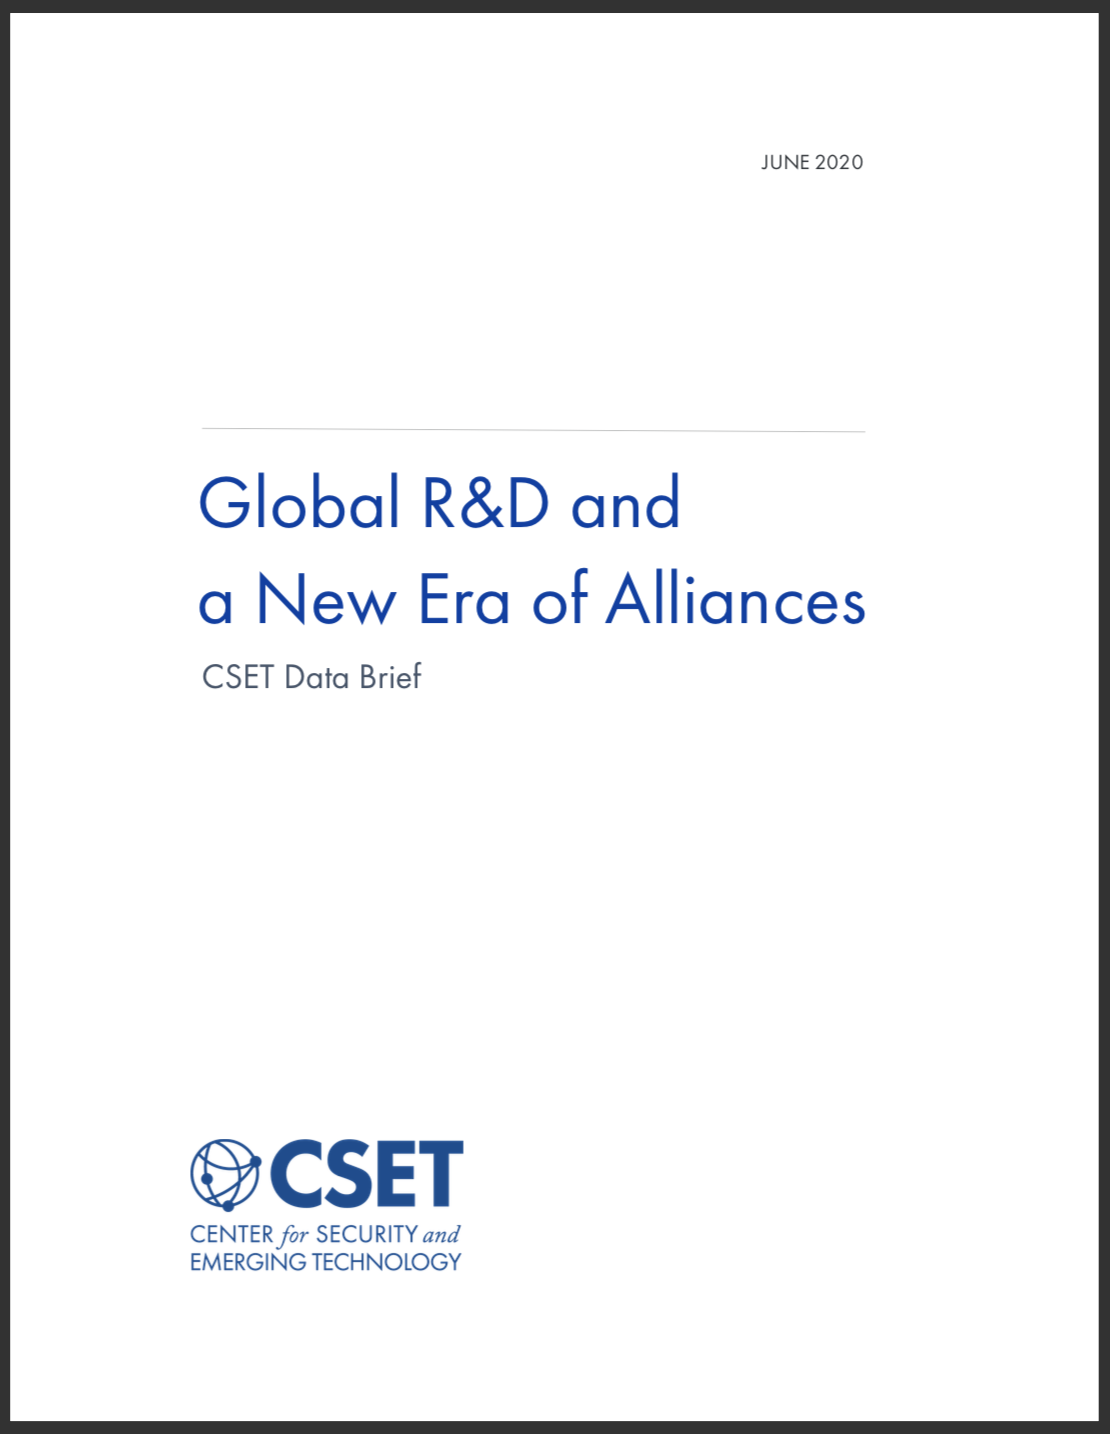 Global R&D Brief Cover